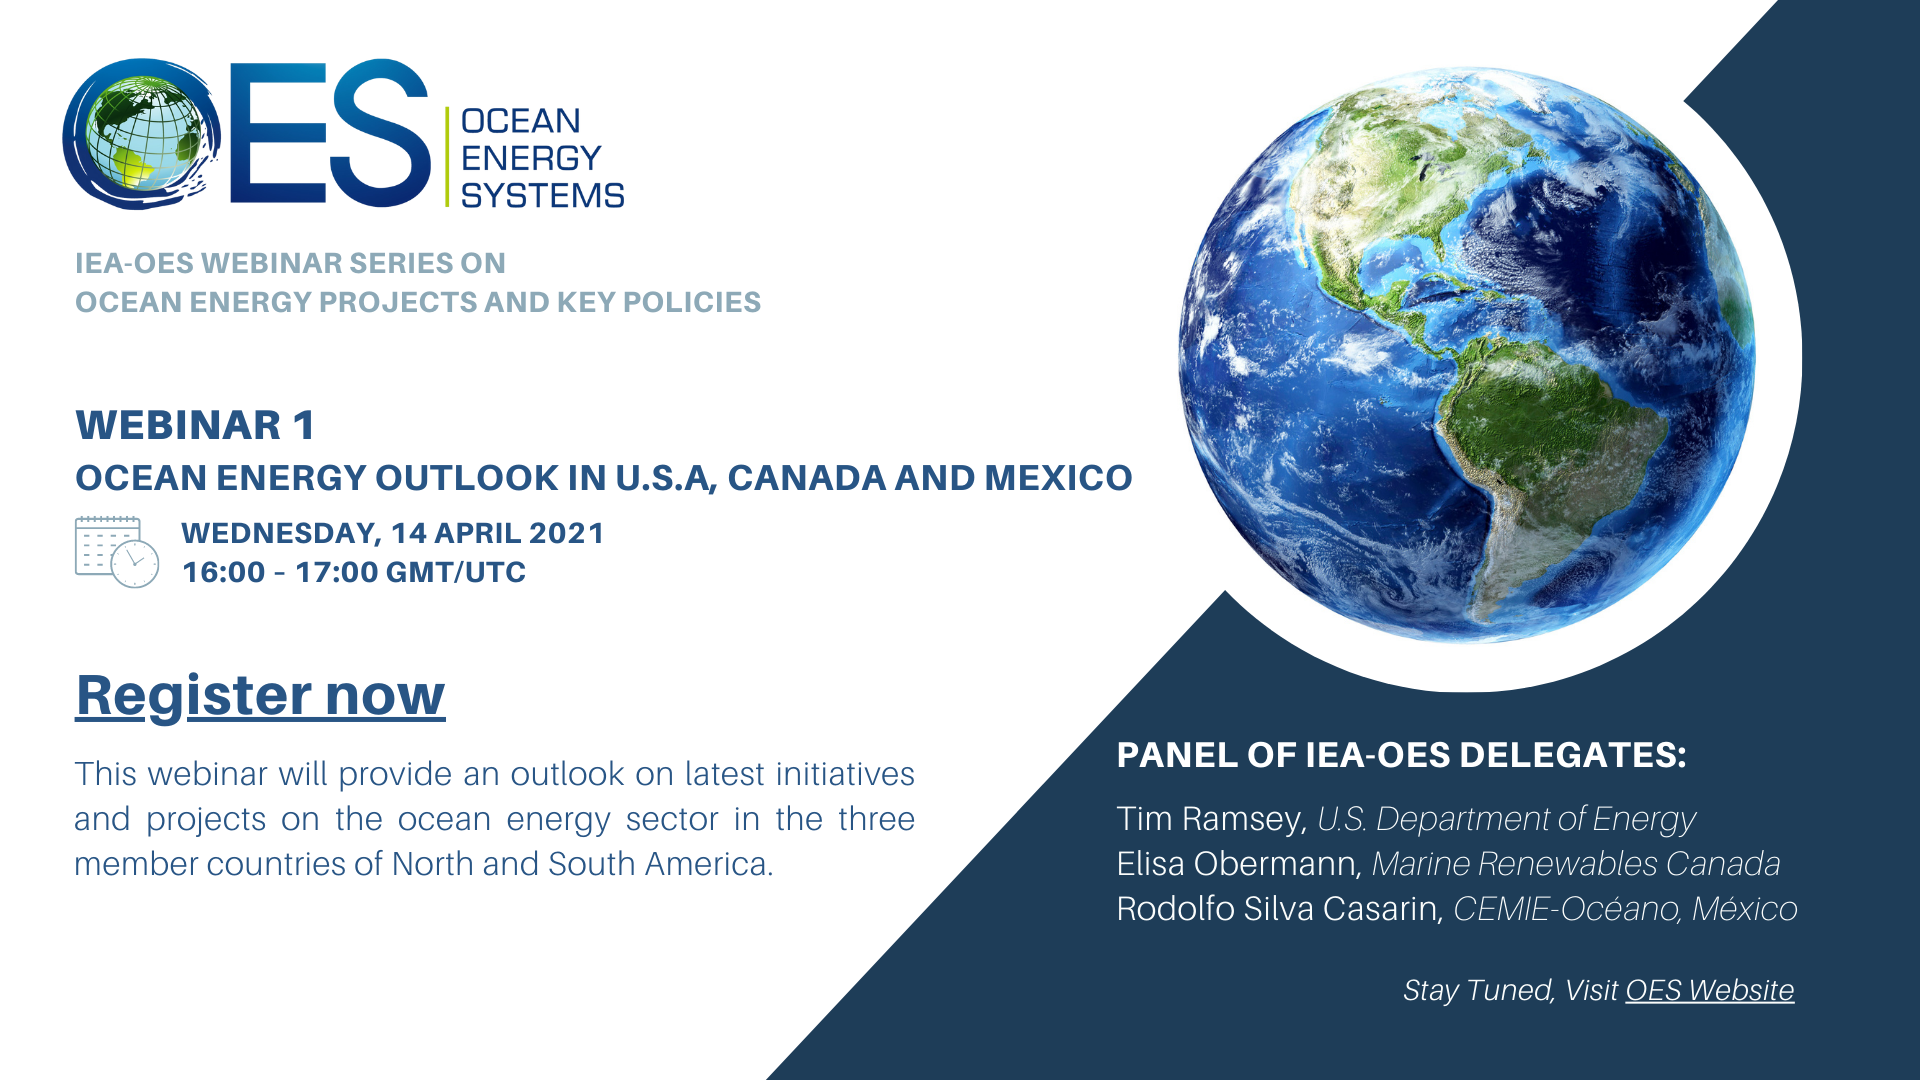 63425-iea-oes-webinar-series-on-ocean-energy-projects-and-key-policies-4-.png